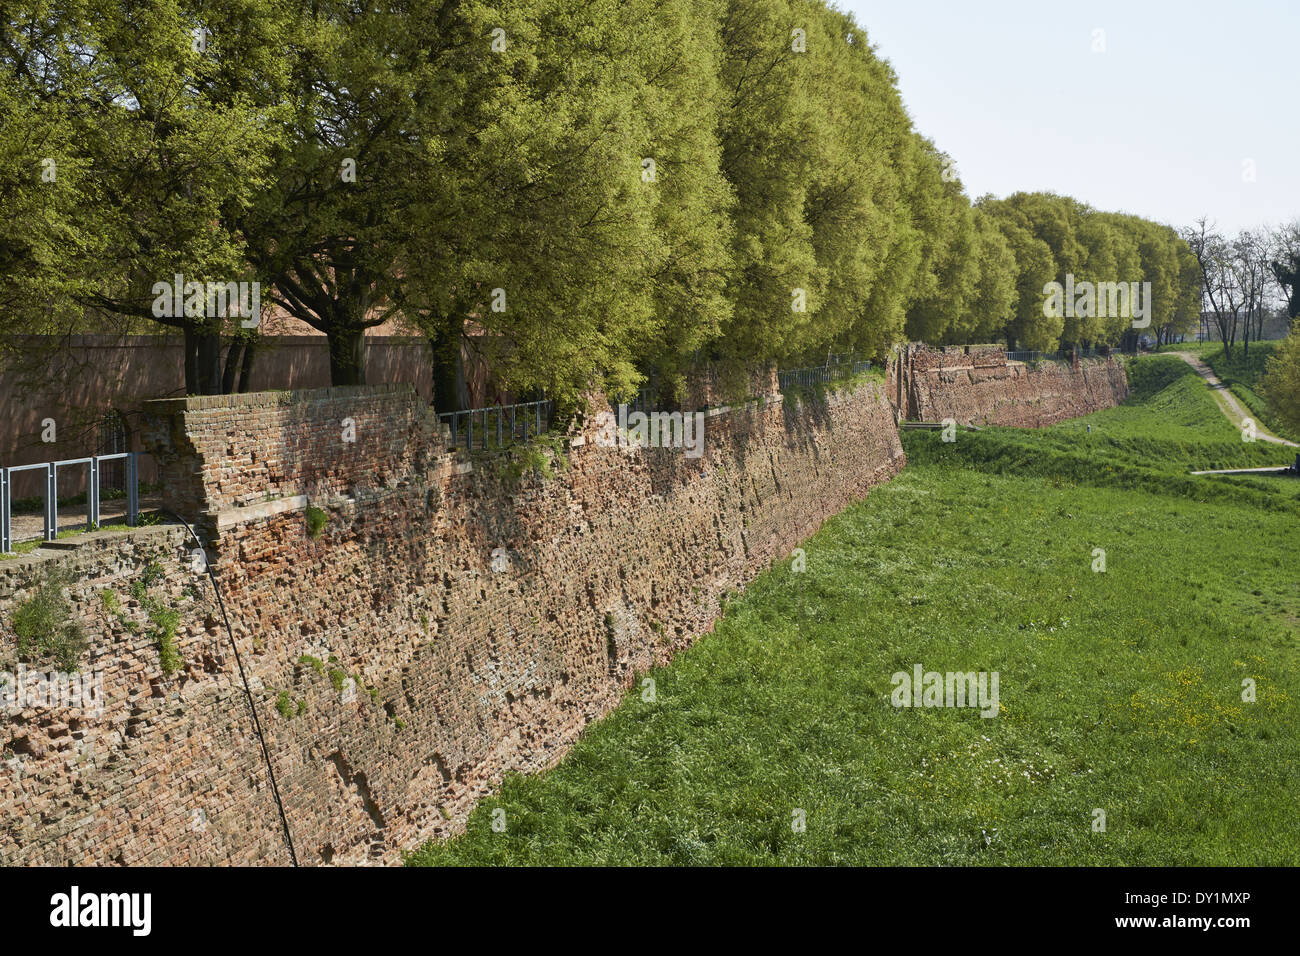 Ferrara, Italy. Fortified city walls built of brick 15th and 16th centuries by d the d'Este dynasty - Stock Image